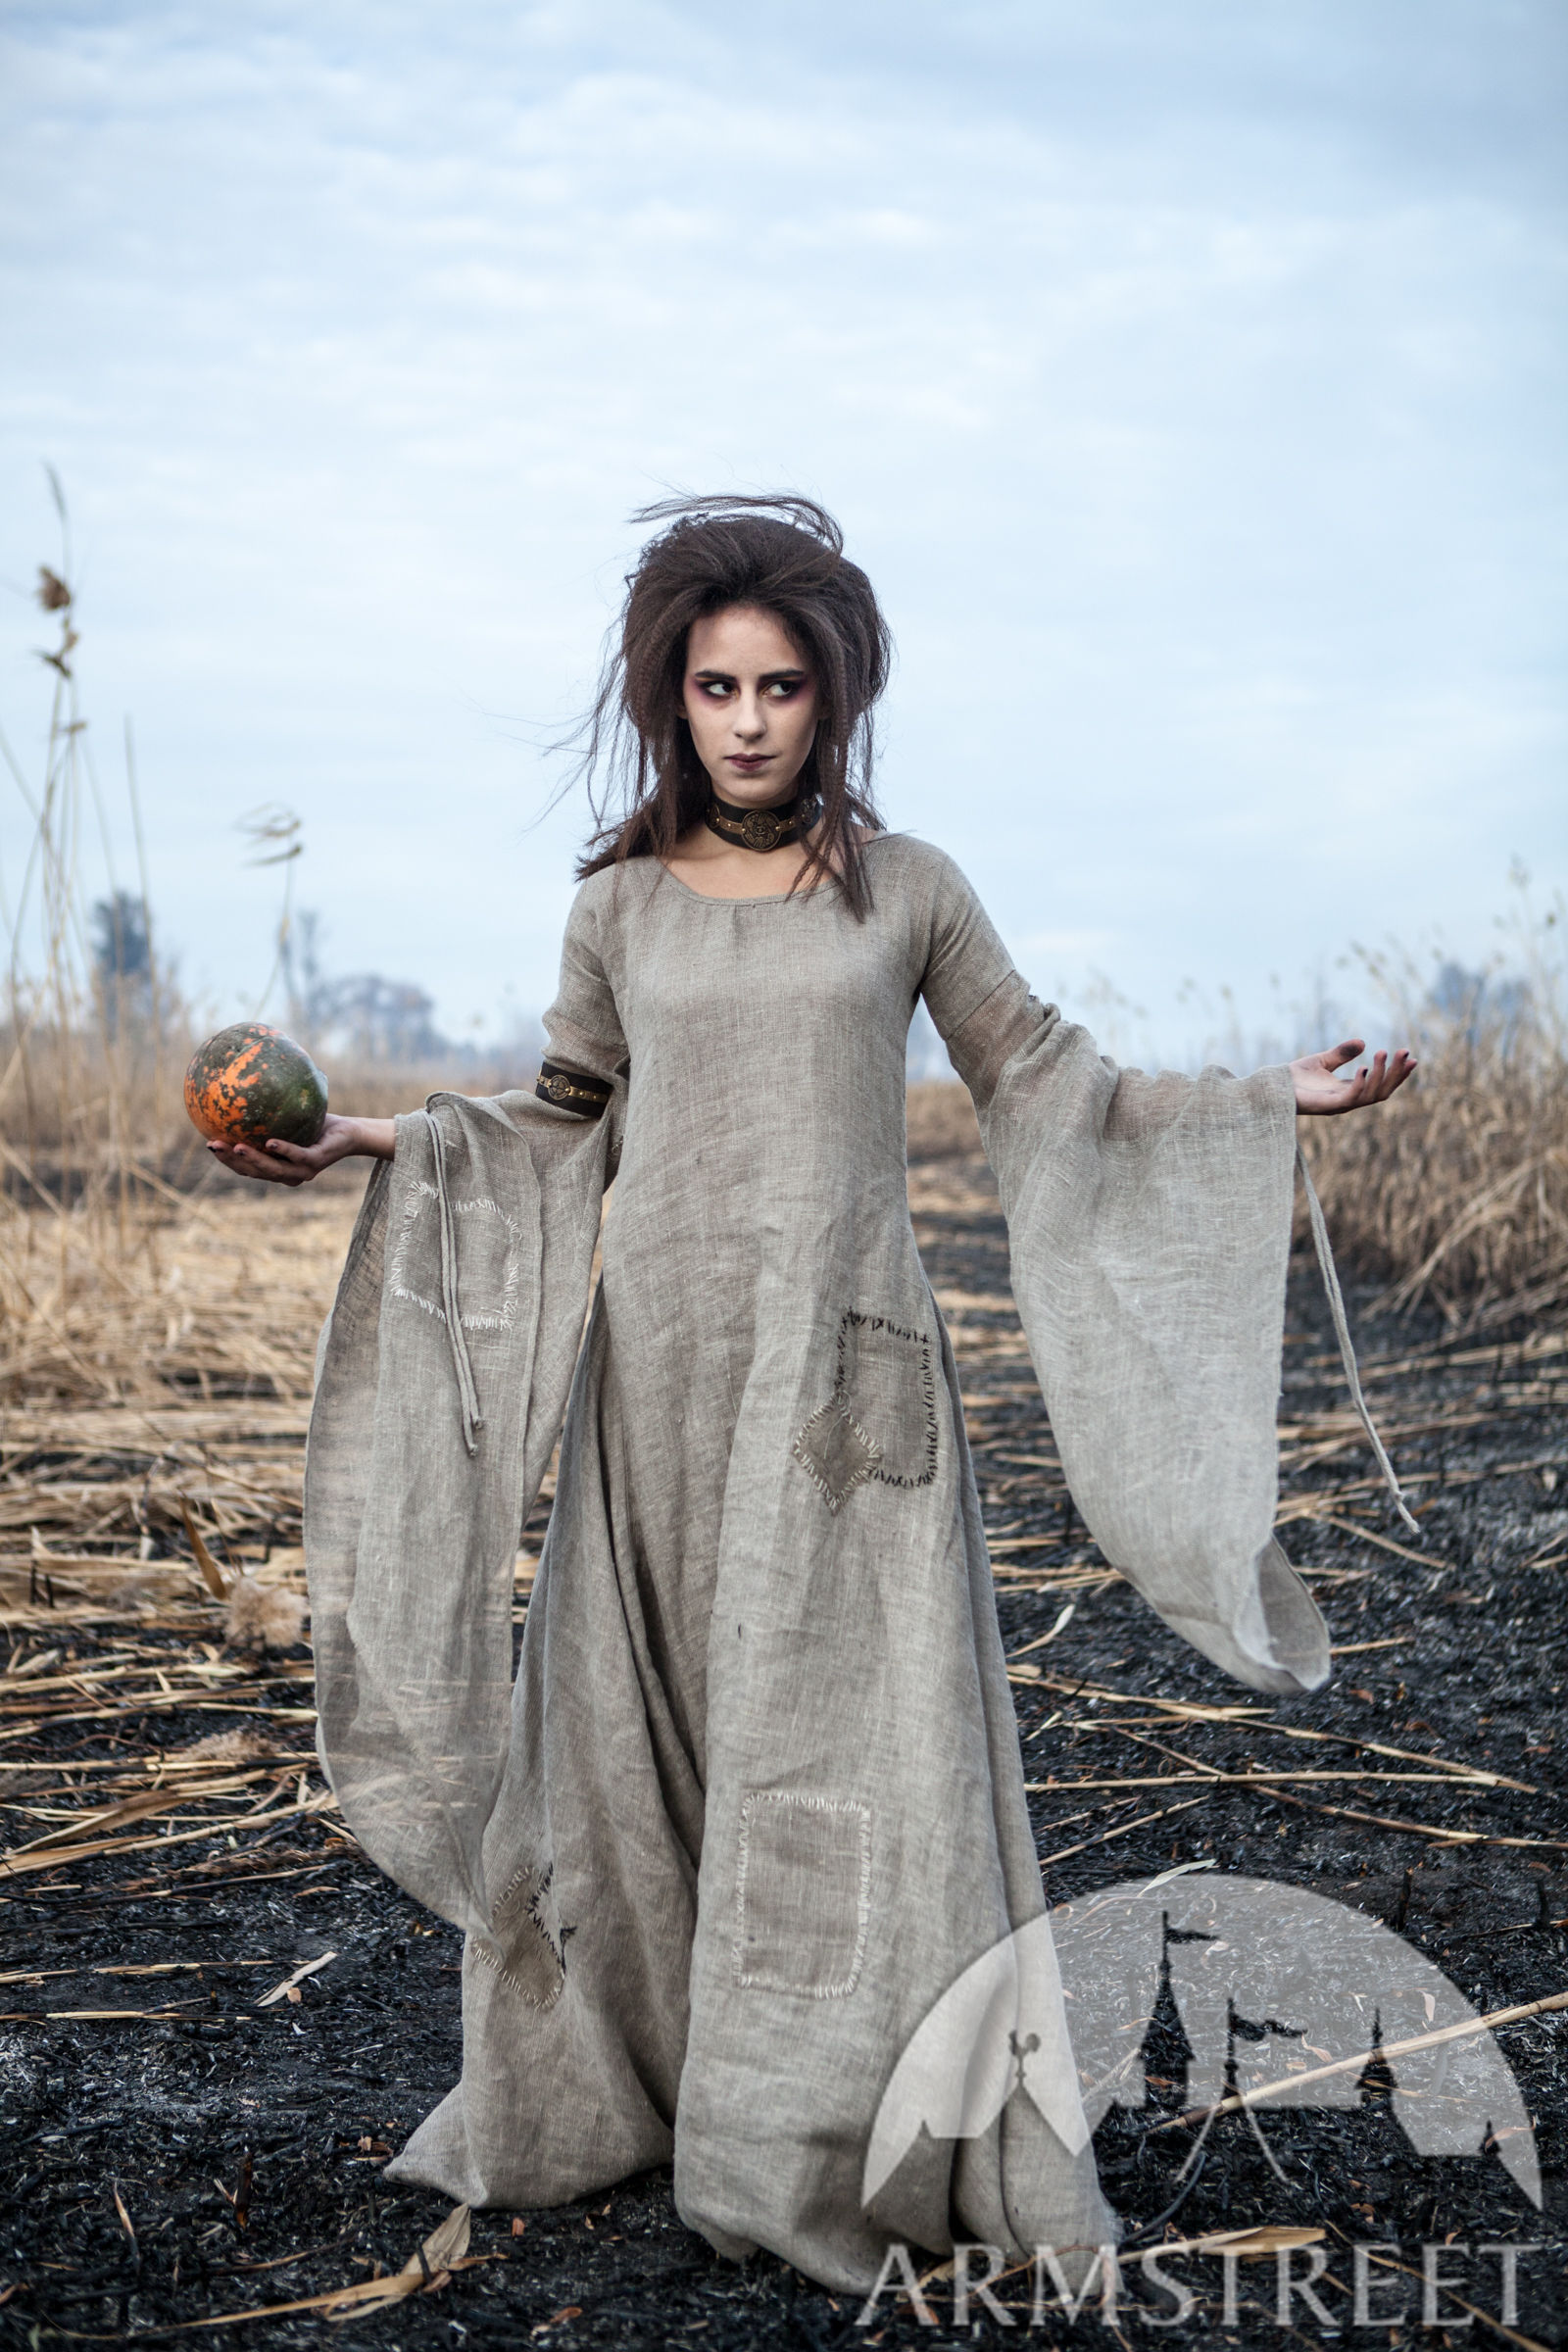 Halloween Linen Witch Tunic. Available in  sackcloth flax linen    by  medieval store ArmStreet